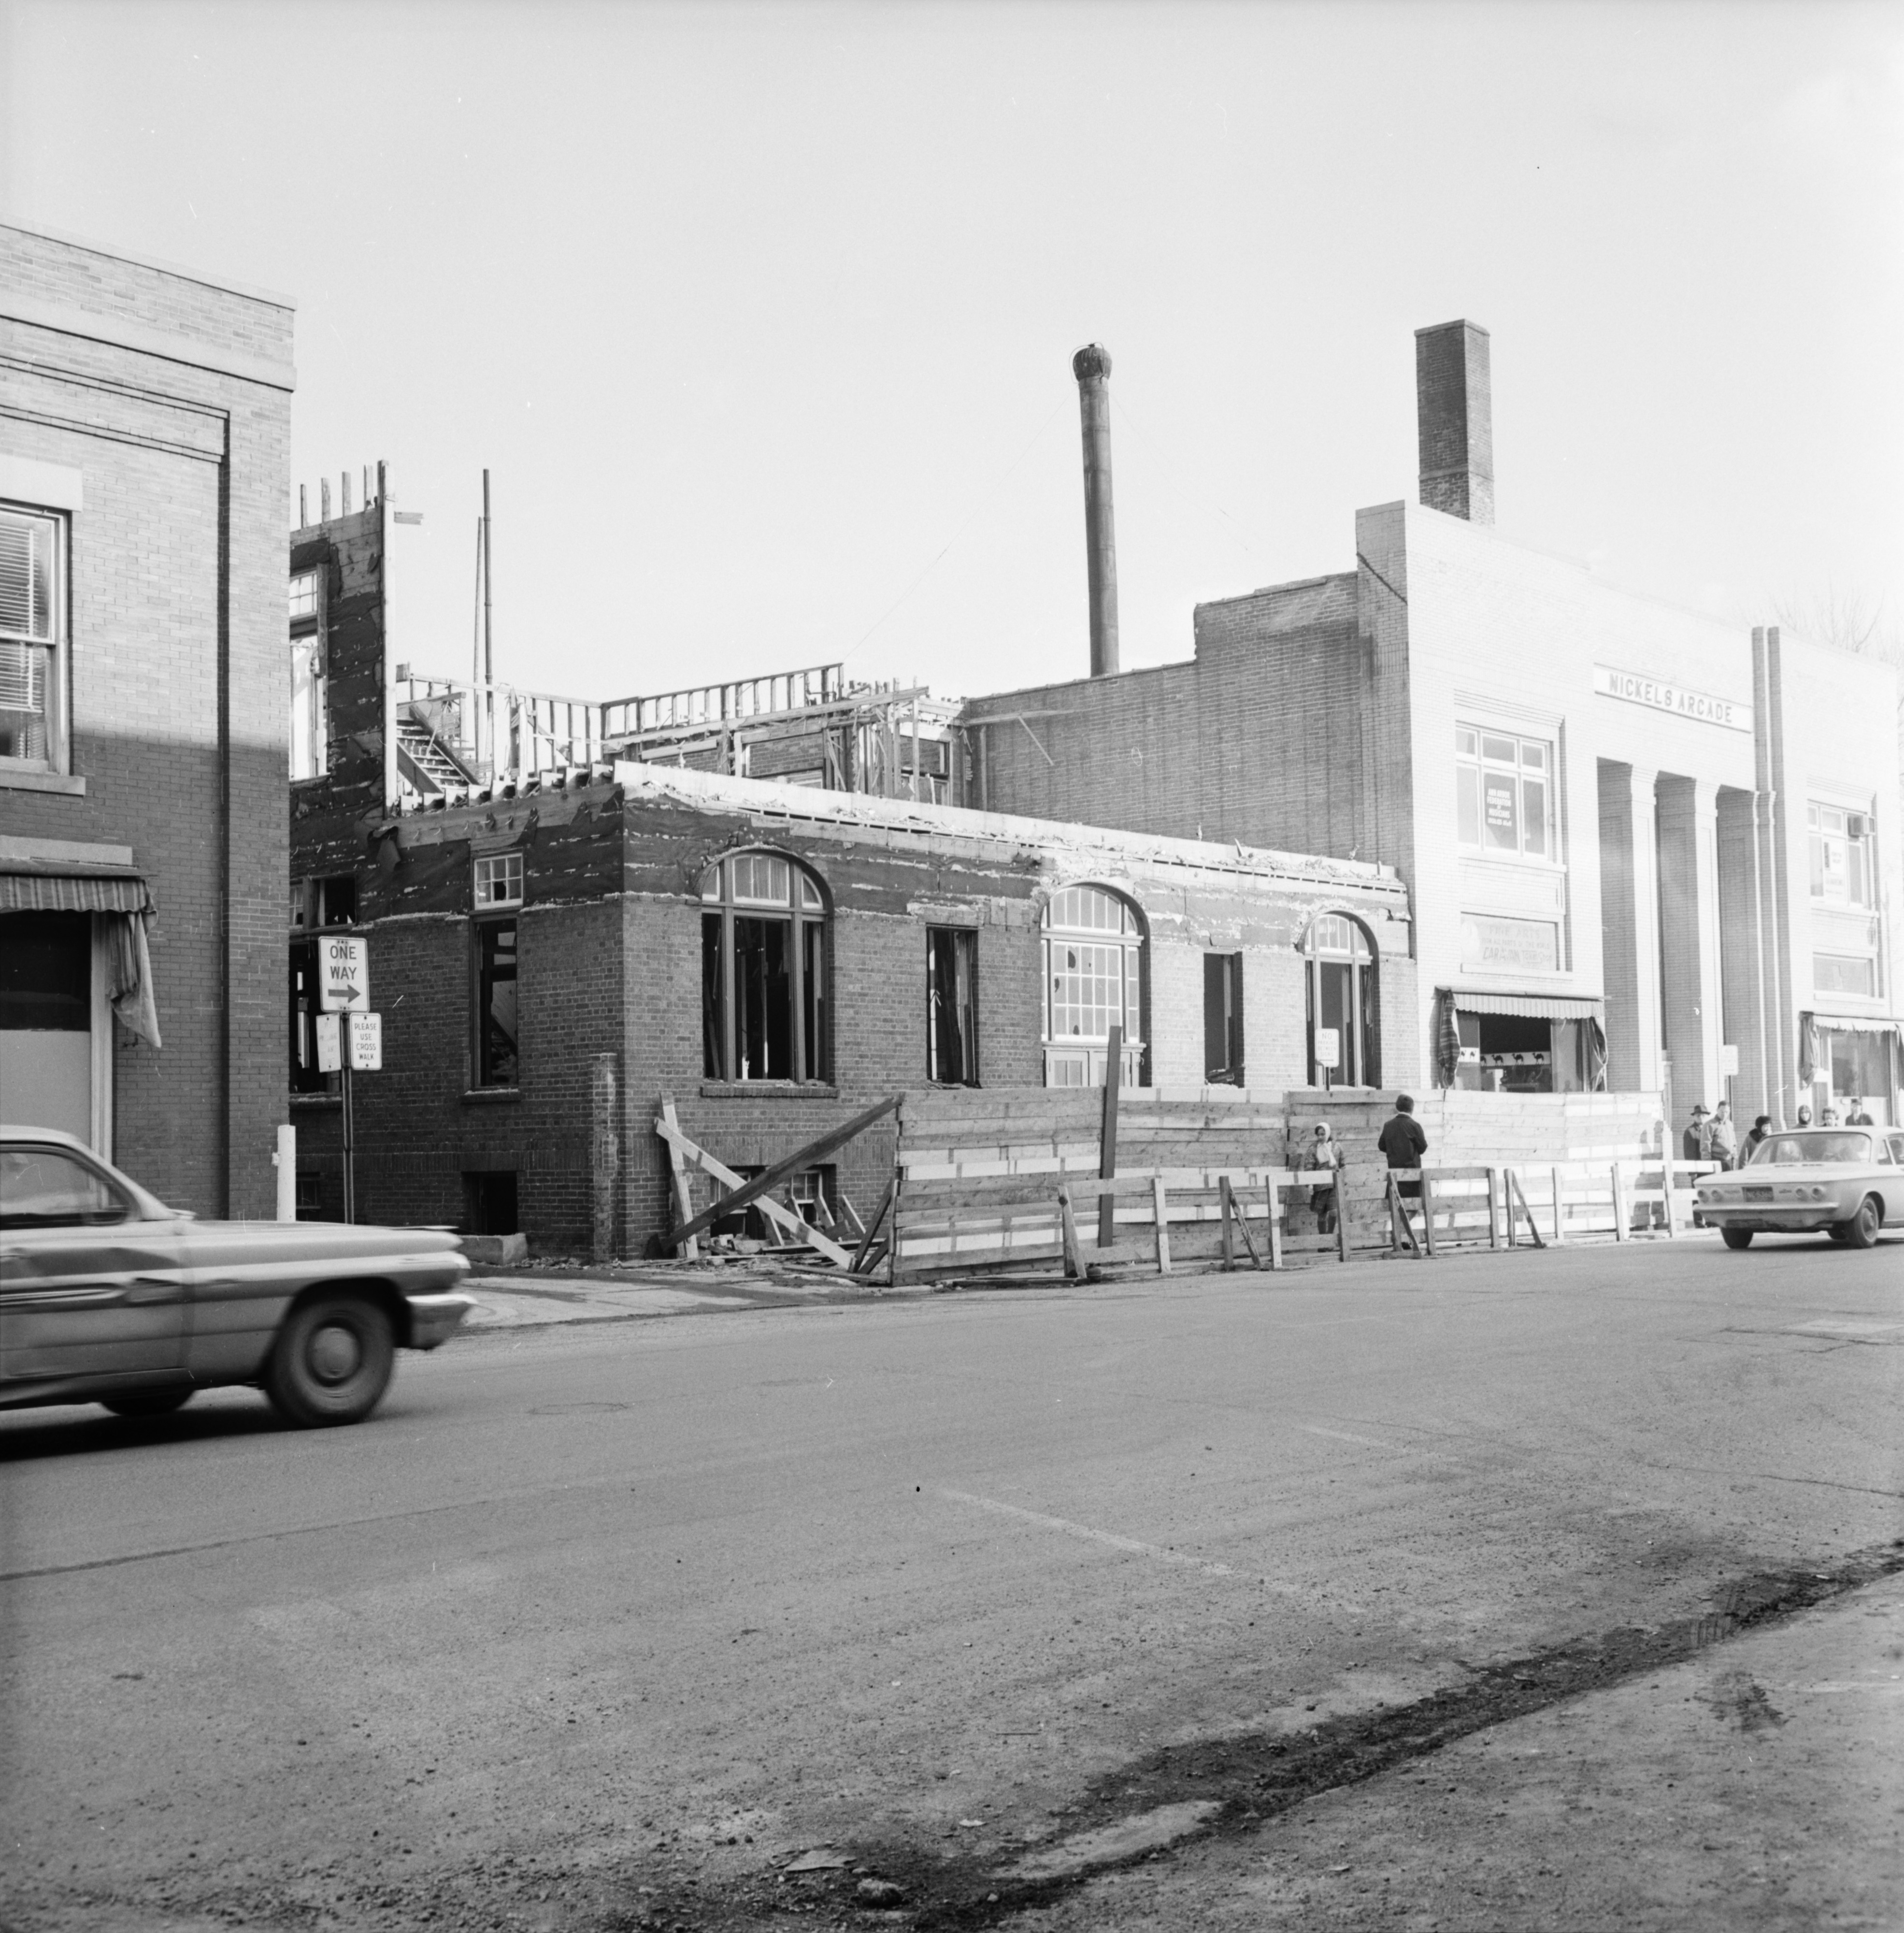 Demolition of former University of Michigan Music School, 325 Maynard, March 1965 image